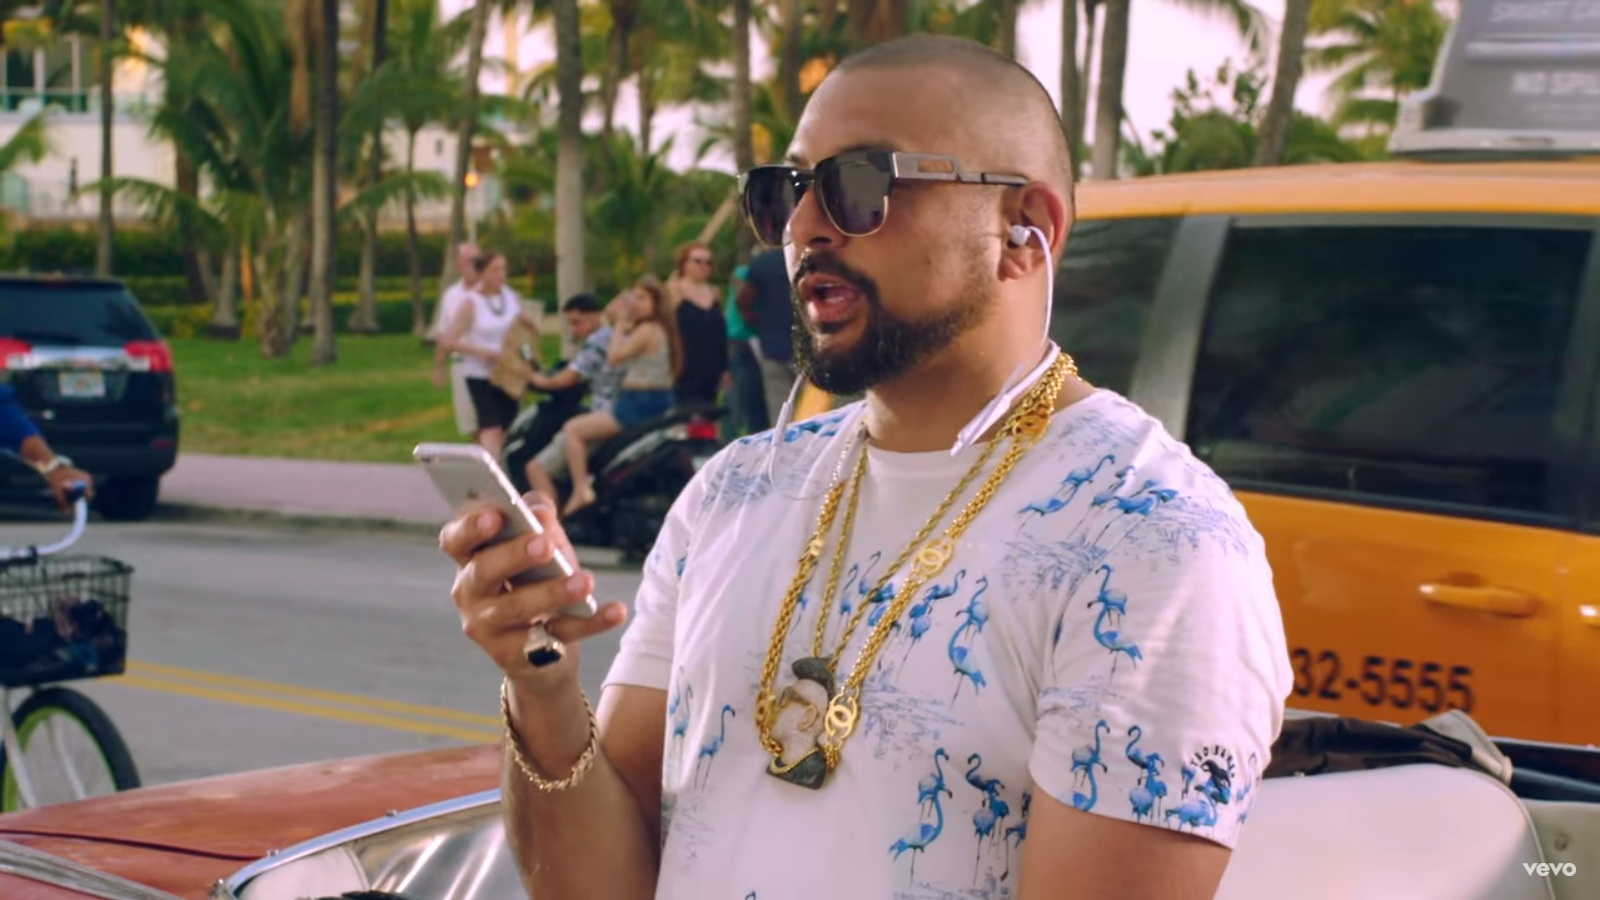 Apple iPhone 7 and Beats - Sean Paul - Body ft. Migos - Official Music Video Product Placement